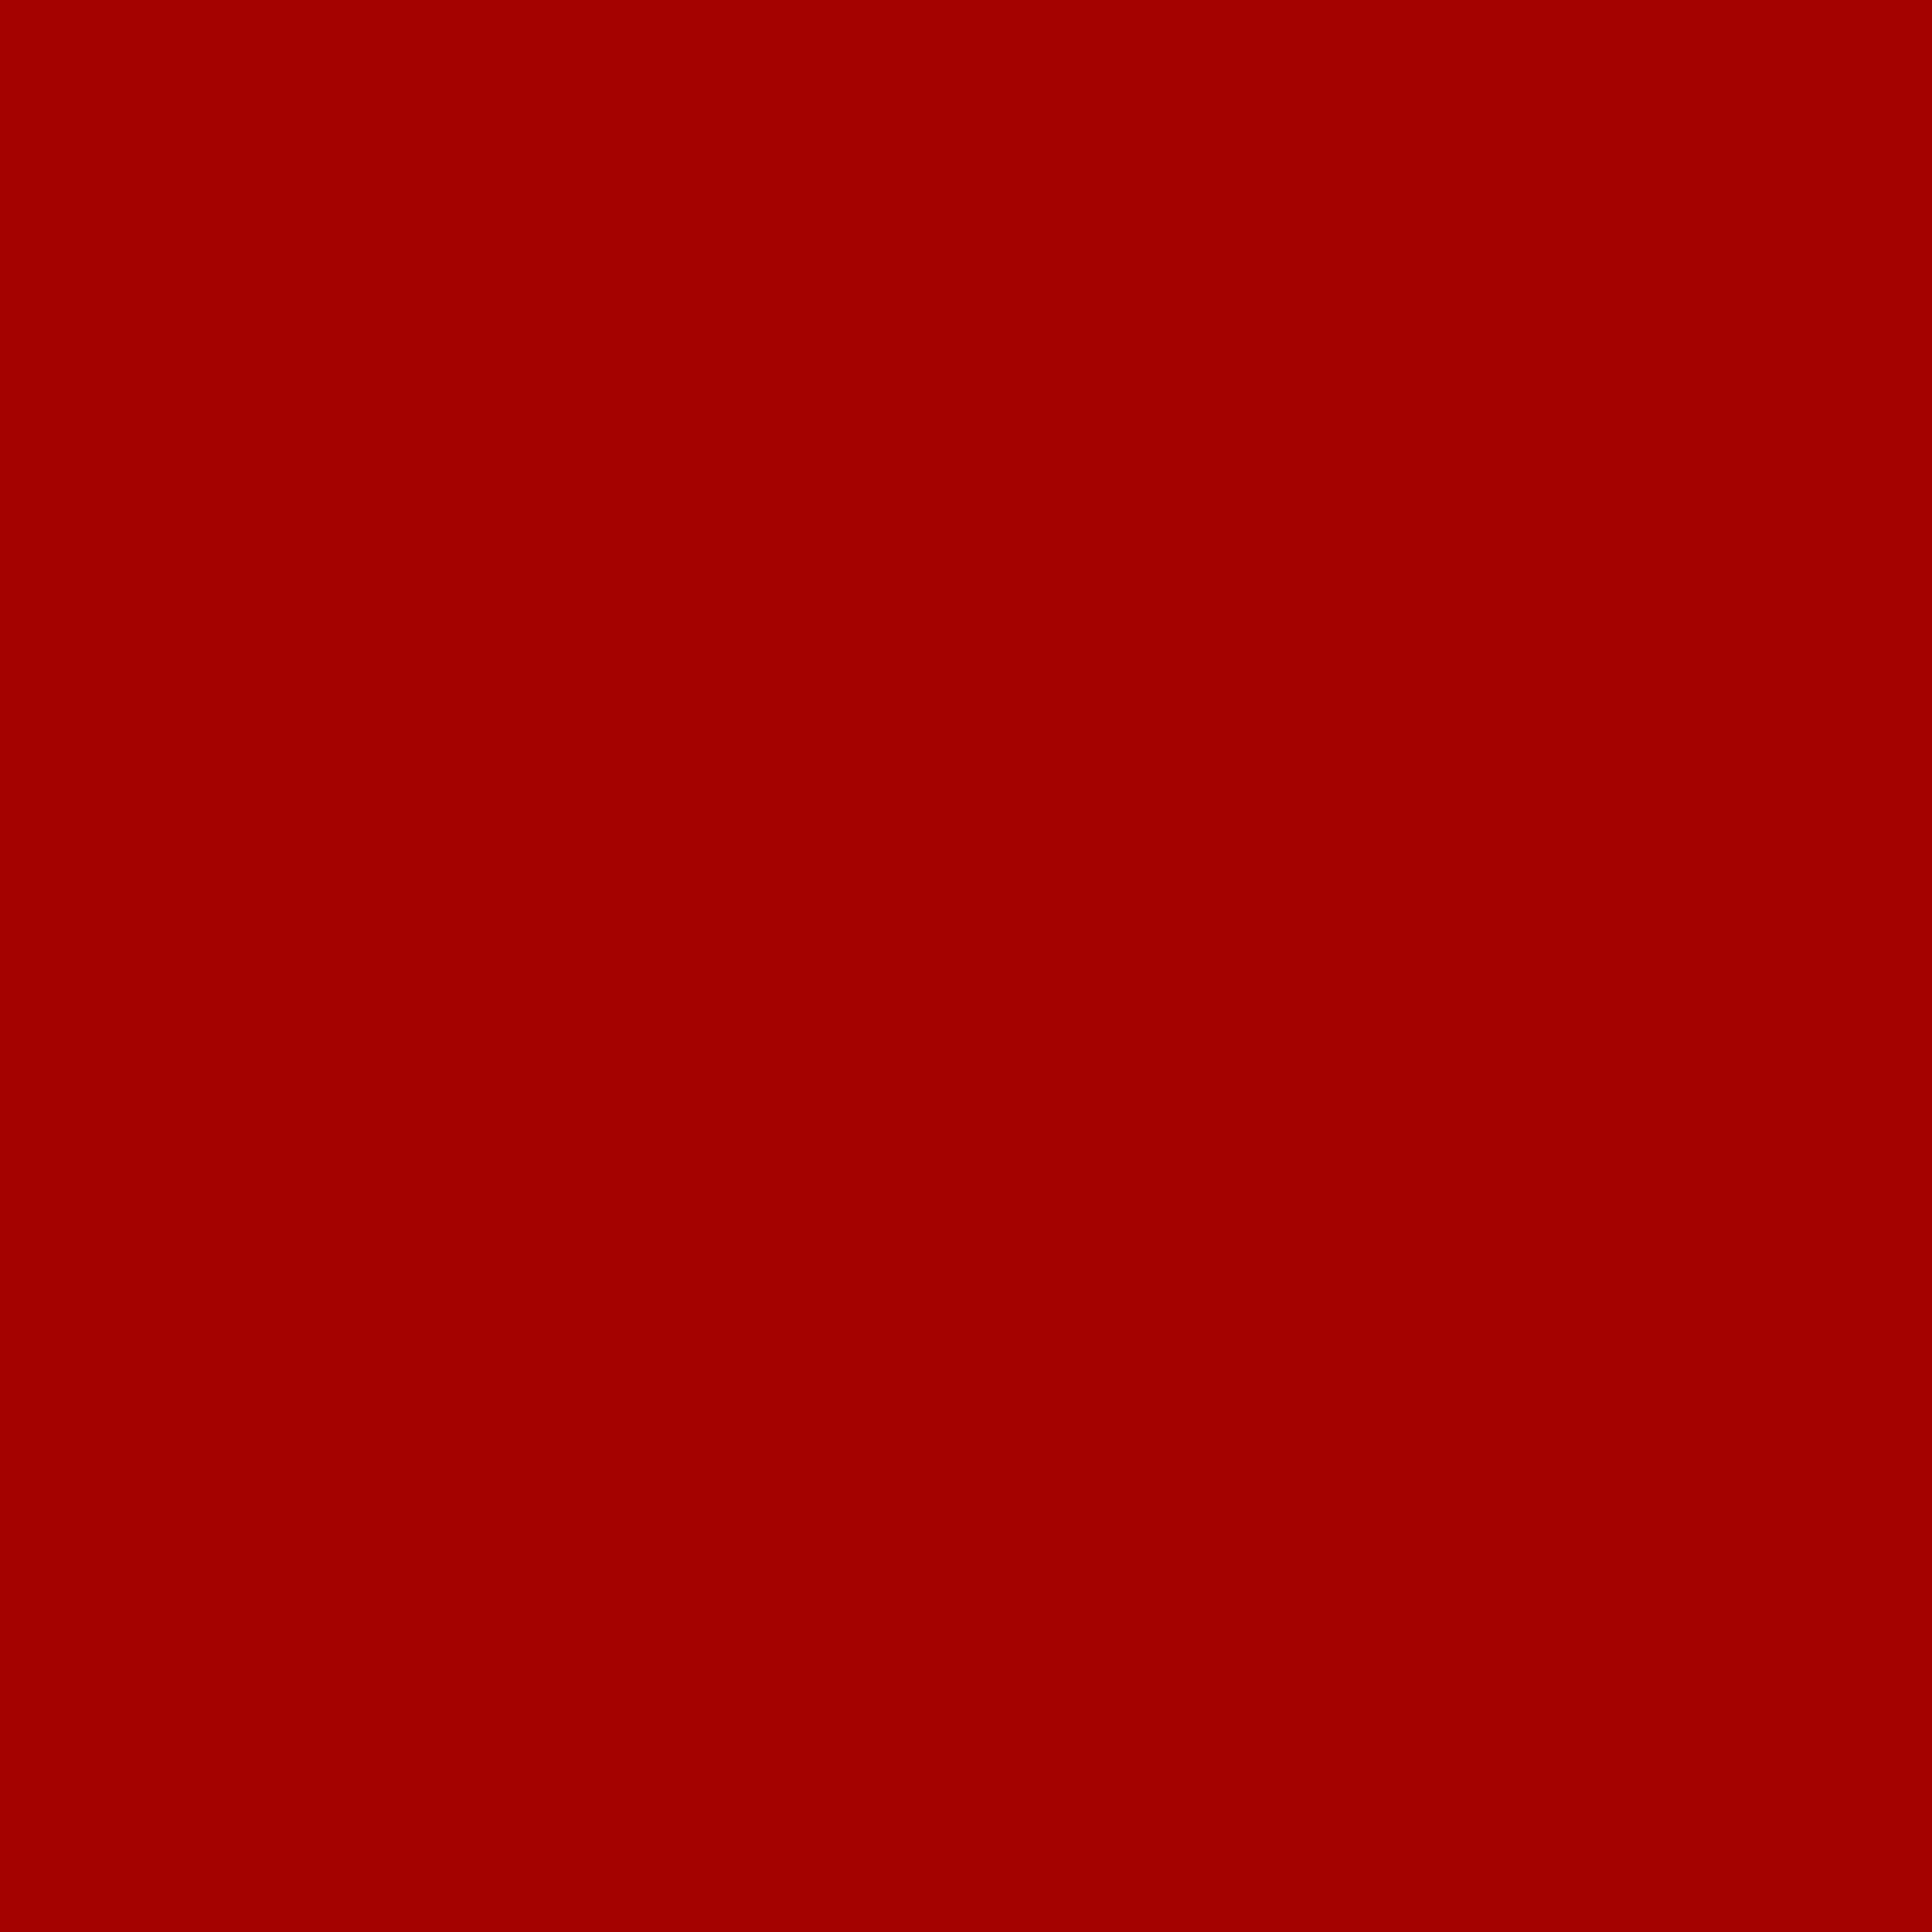 2048x2048 dark candy apple red solid color background